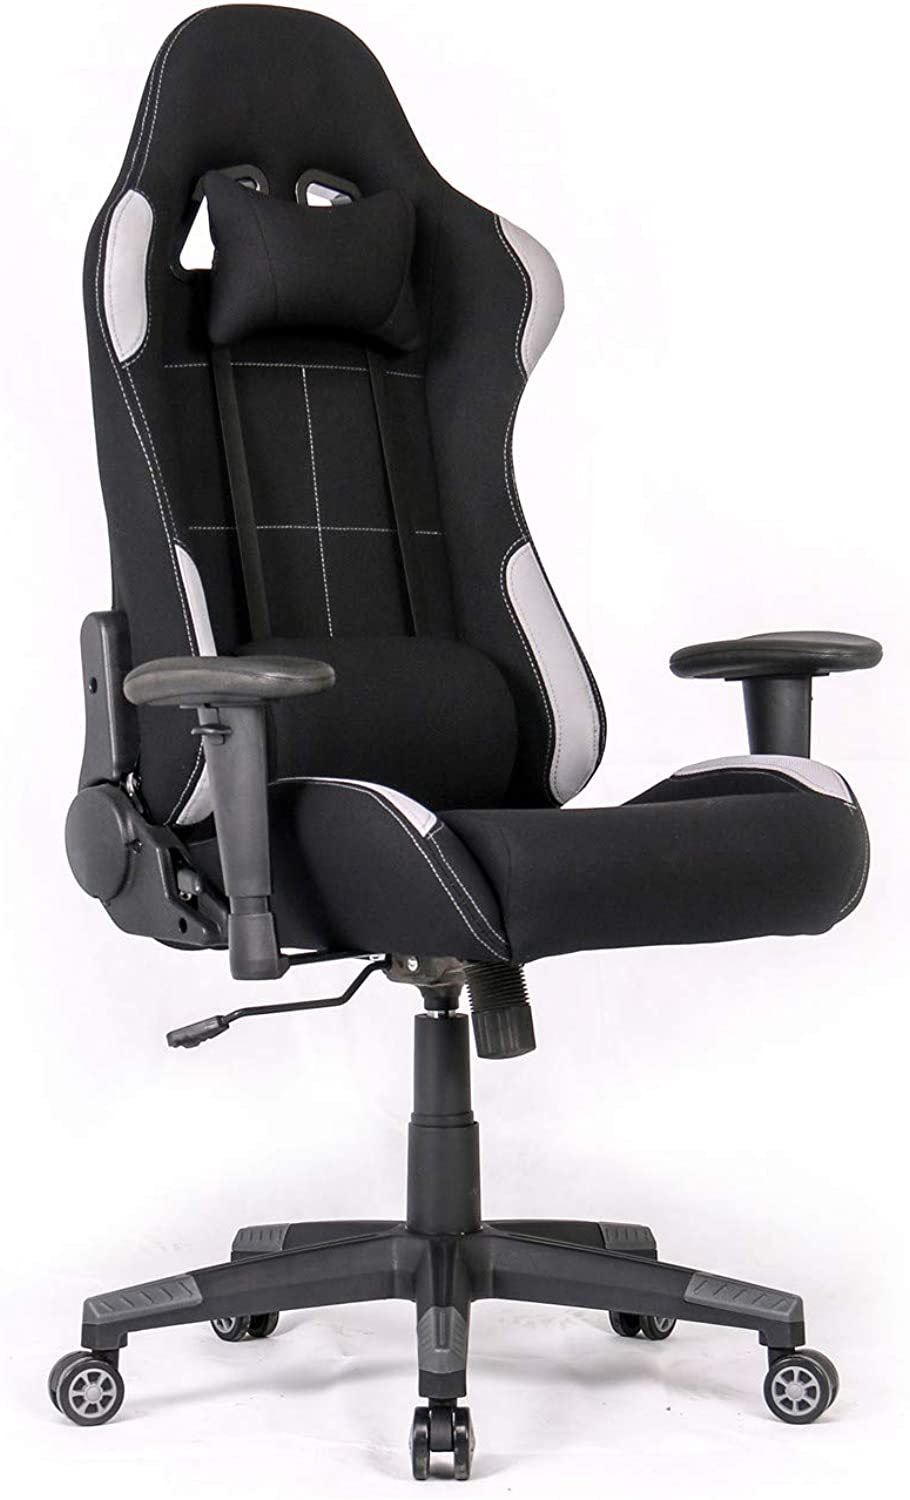 Ergonomic Gaming Chair Racing Style Office Chair Recliner Computer Chair with Massage Fabric High-Back E-Sports Chair Height Adjustable Gaming Office Desk Chair (Black Grey)